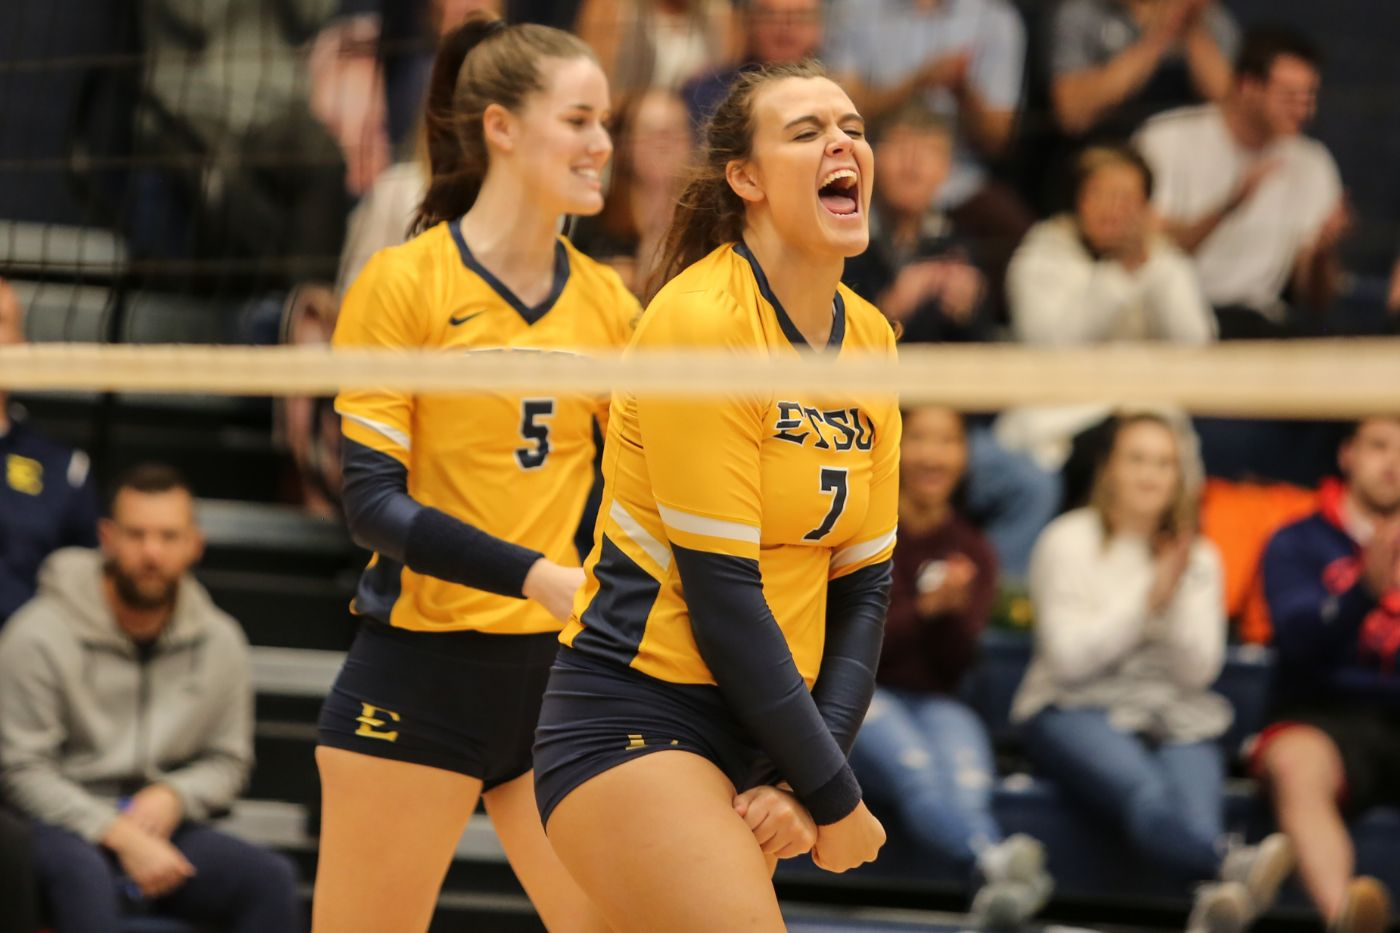 ETSU claims a spot in SoCon Championship match with sweep over Mercer